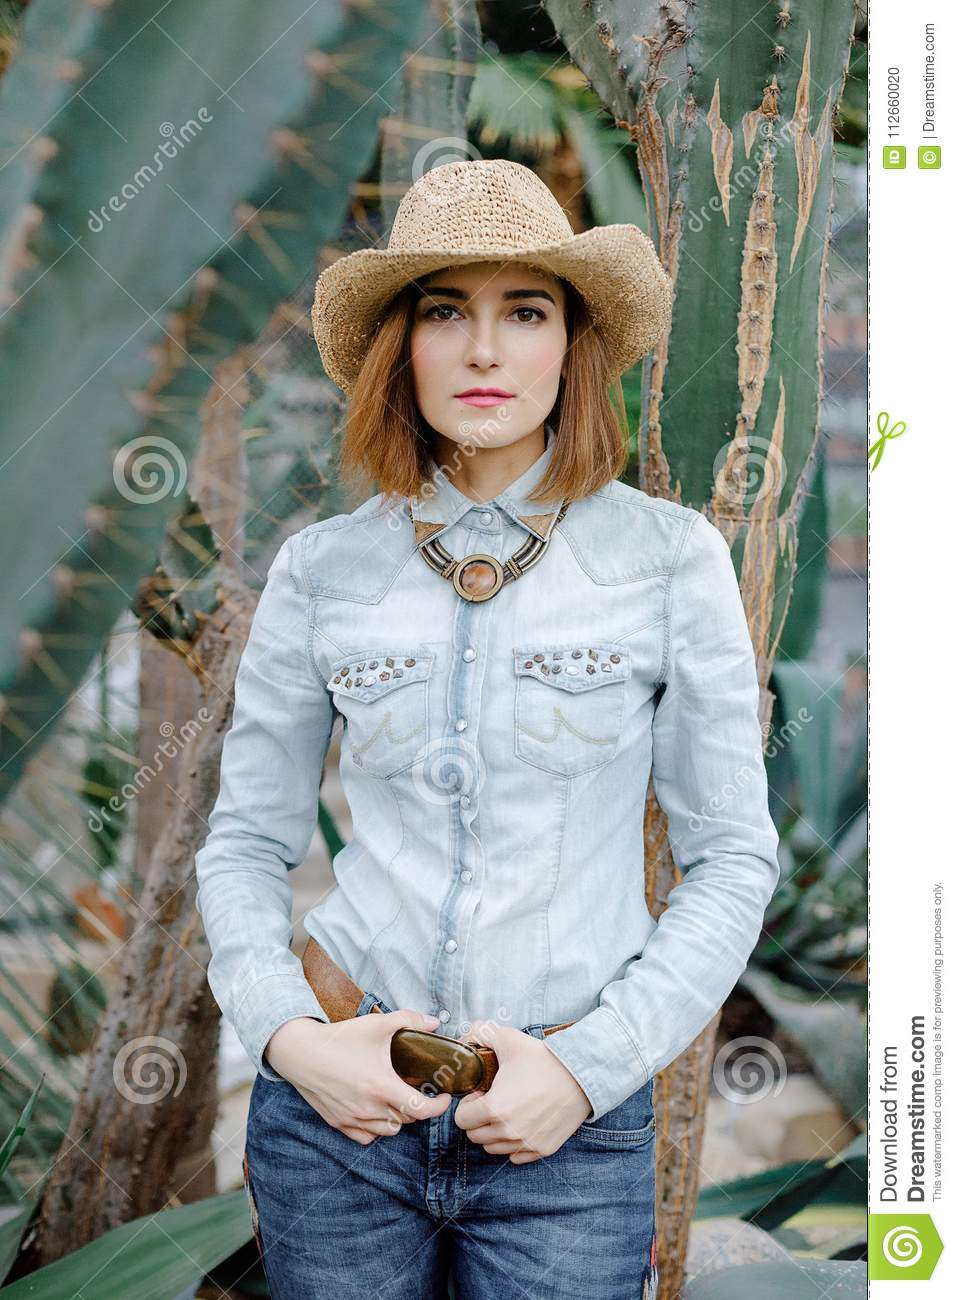 Woman In Western Wear In Cowboy Hat Jeans And Cowboy Boots Stock